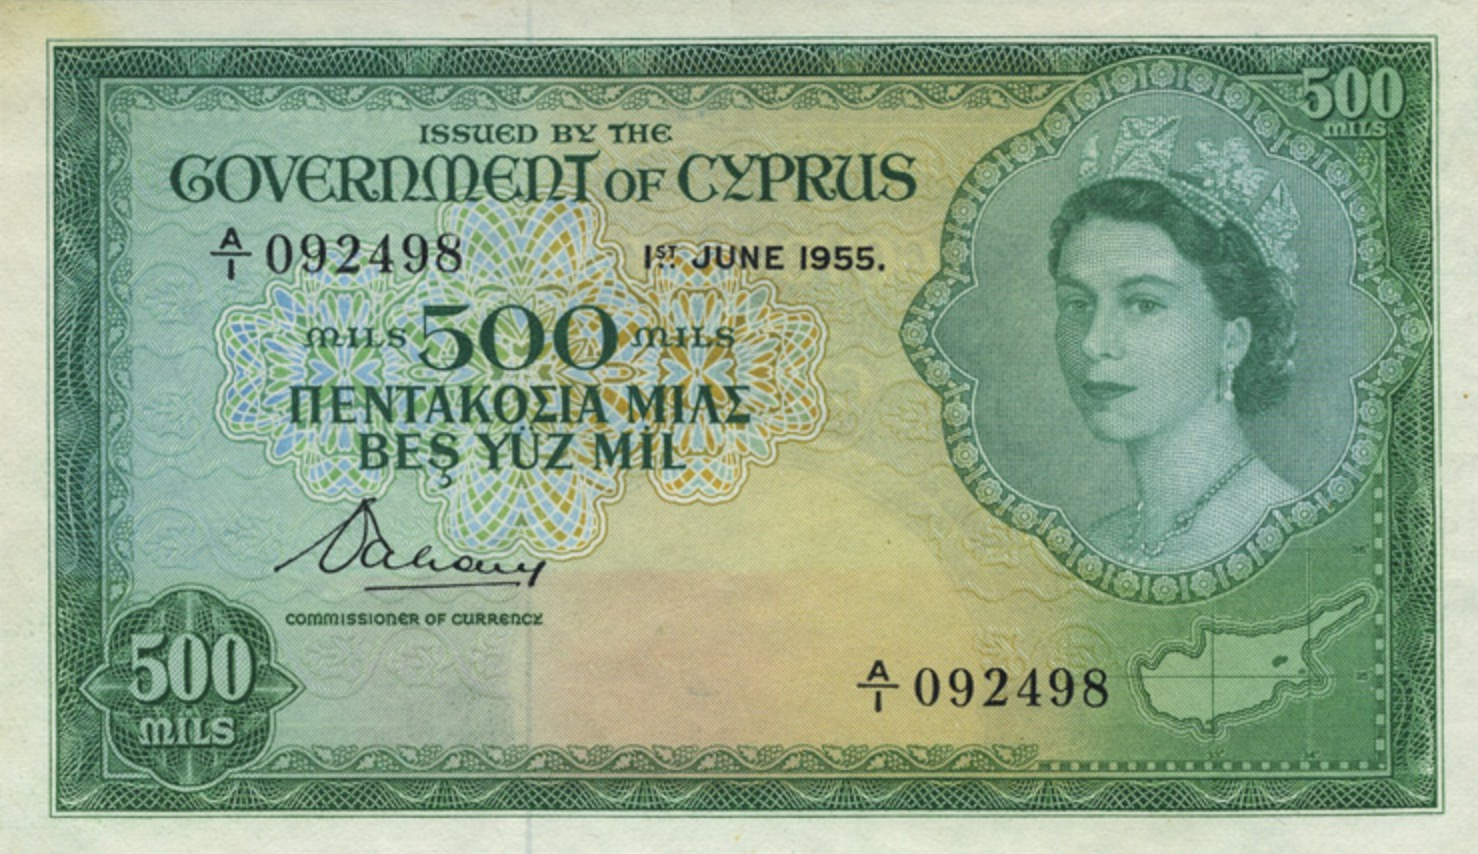 500 Mils banknote (Government of Cyprus)